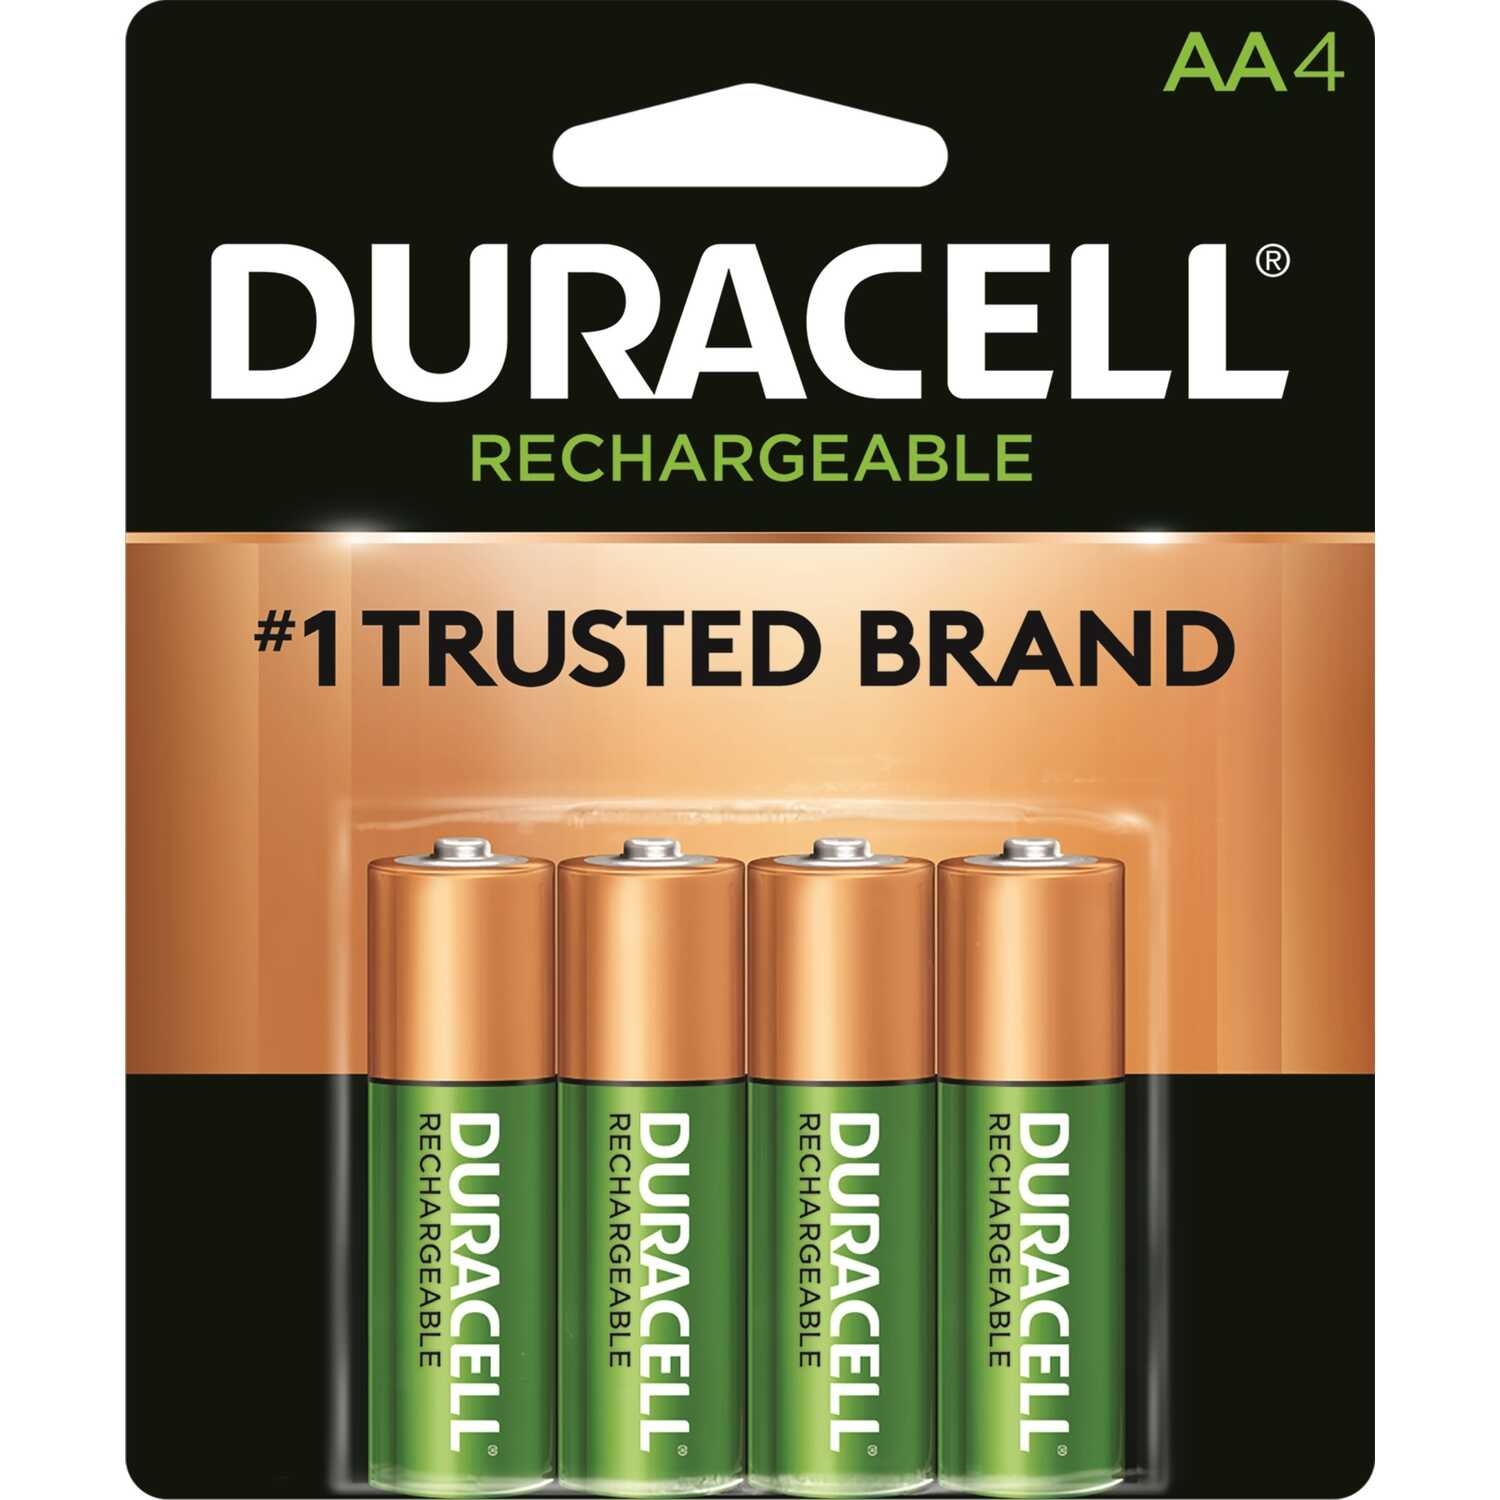 Duracell  Rechargeable  AA  1.4 volt DCNLAA4BCD  Rechargeable Battery  4 pk NiMH